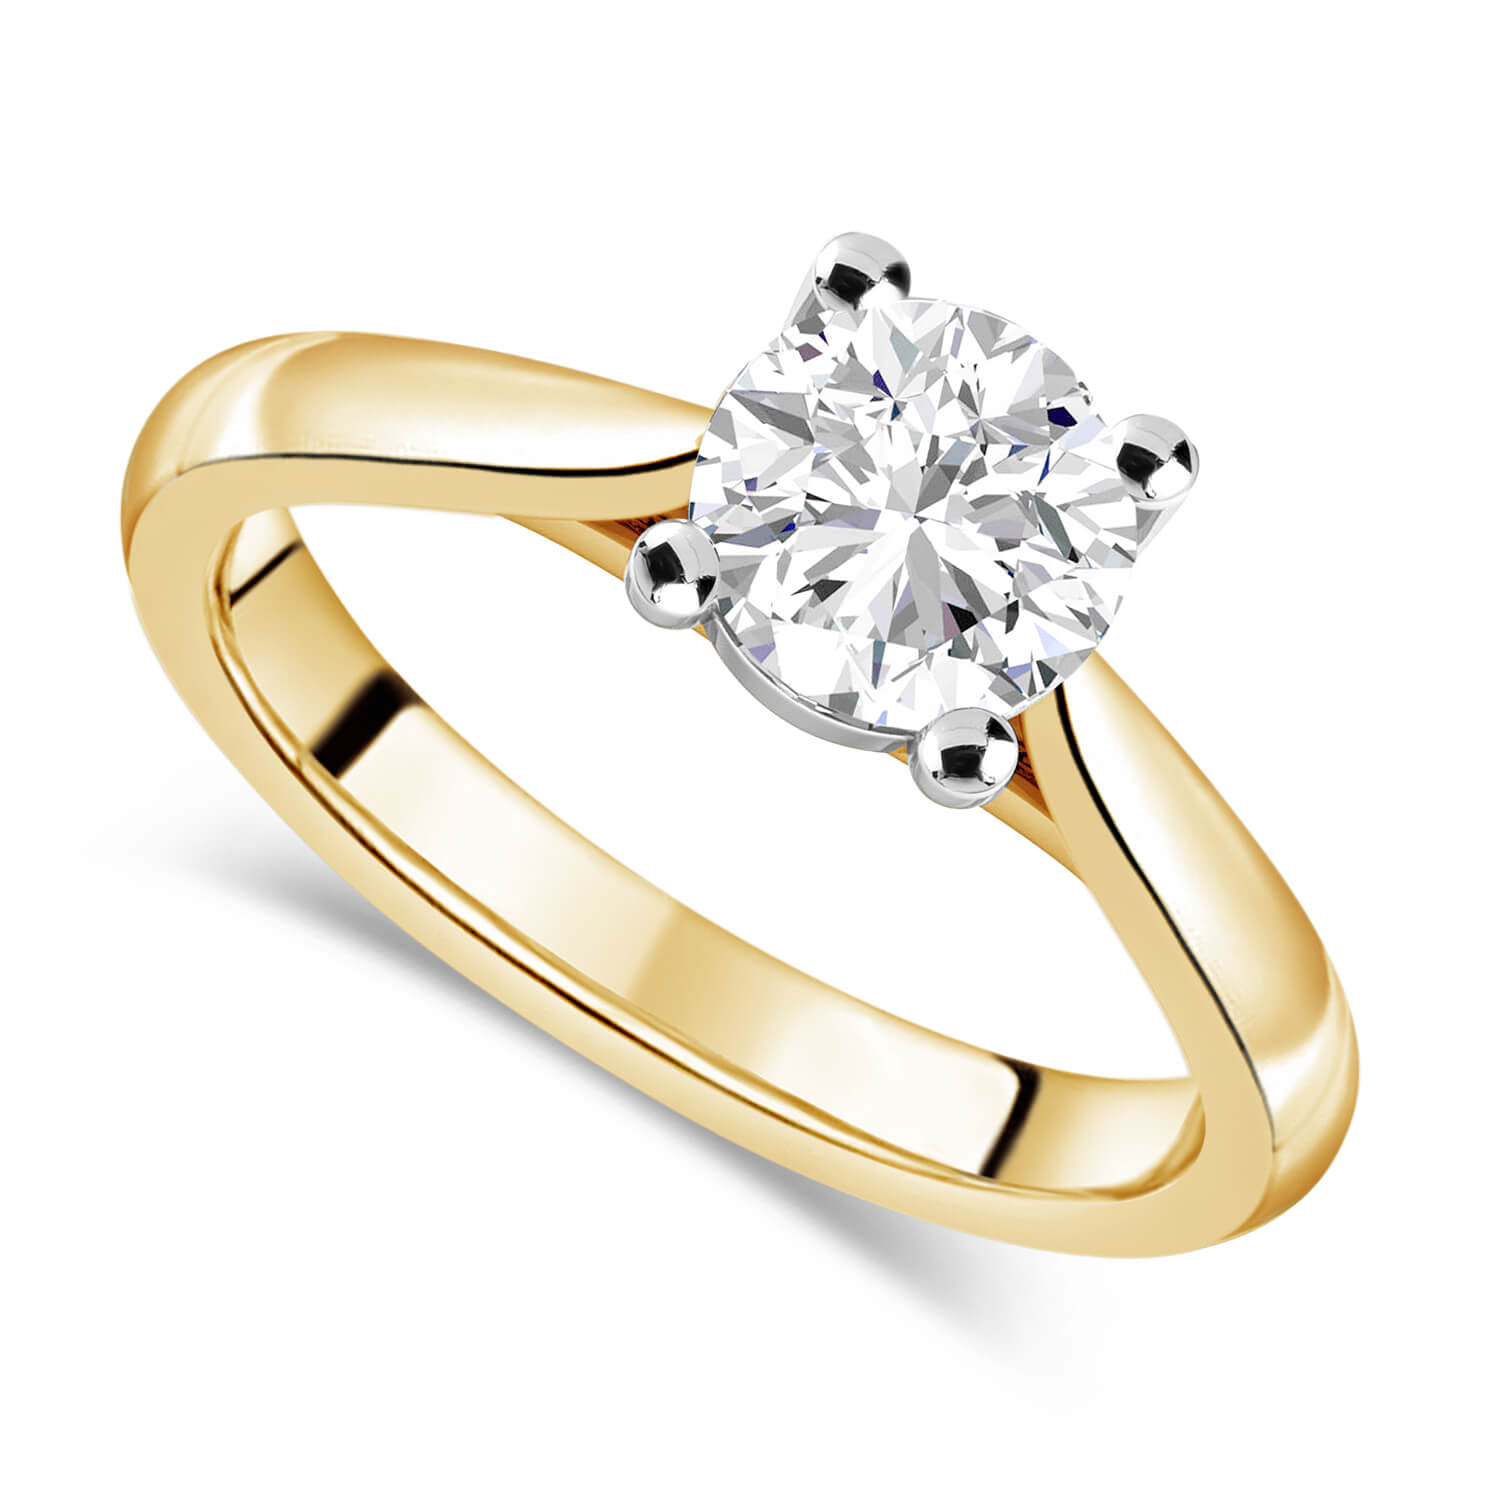 18ct Yellow Gold 1.25ct Round Diamond Fraser Hart Setting Ring